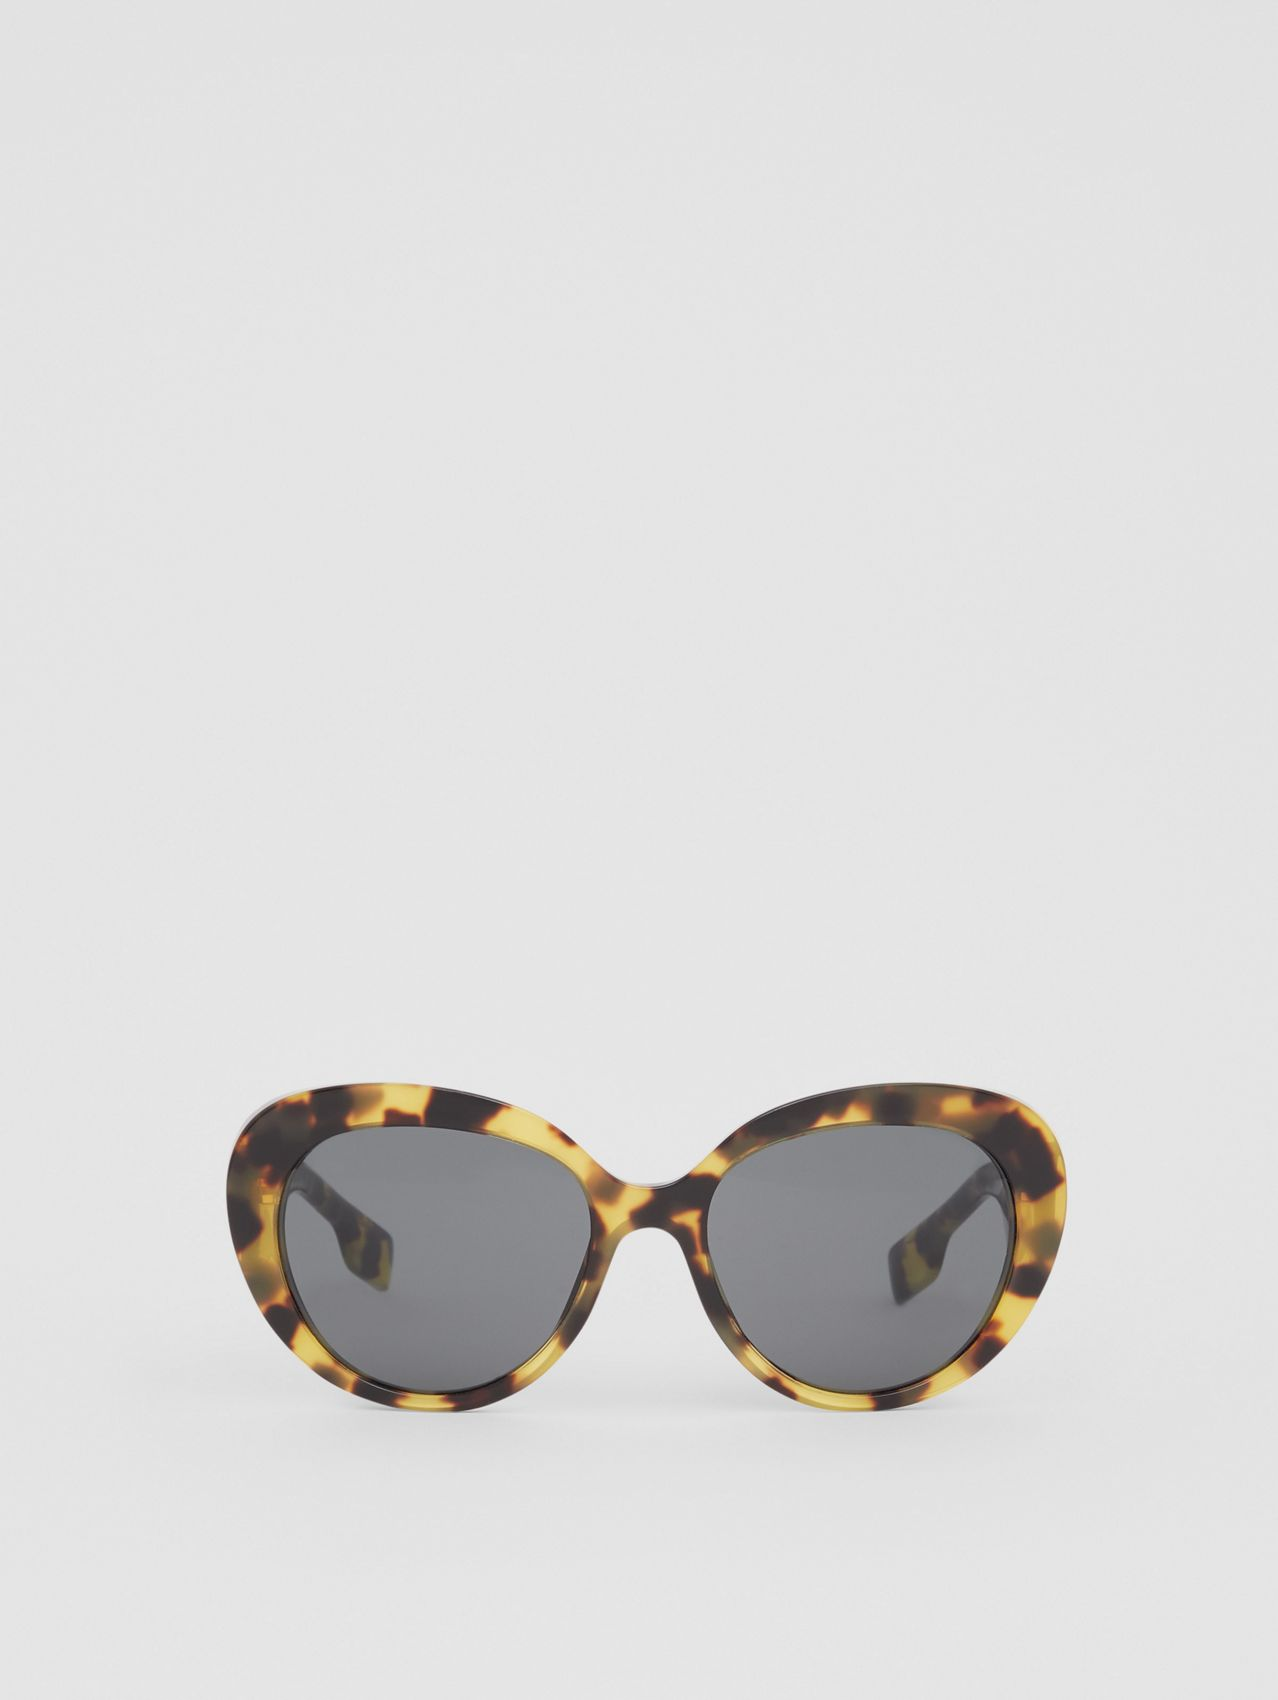 Monogram Motif Cat-eye Frame Sunglasses in Bright Tortoiseshell